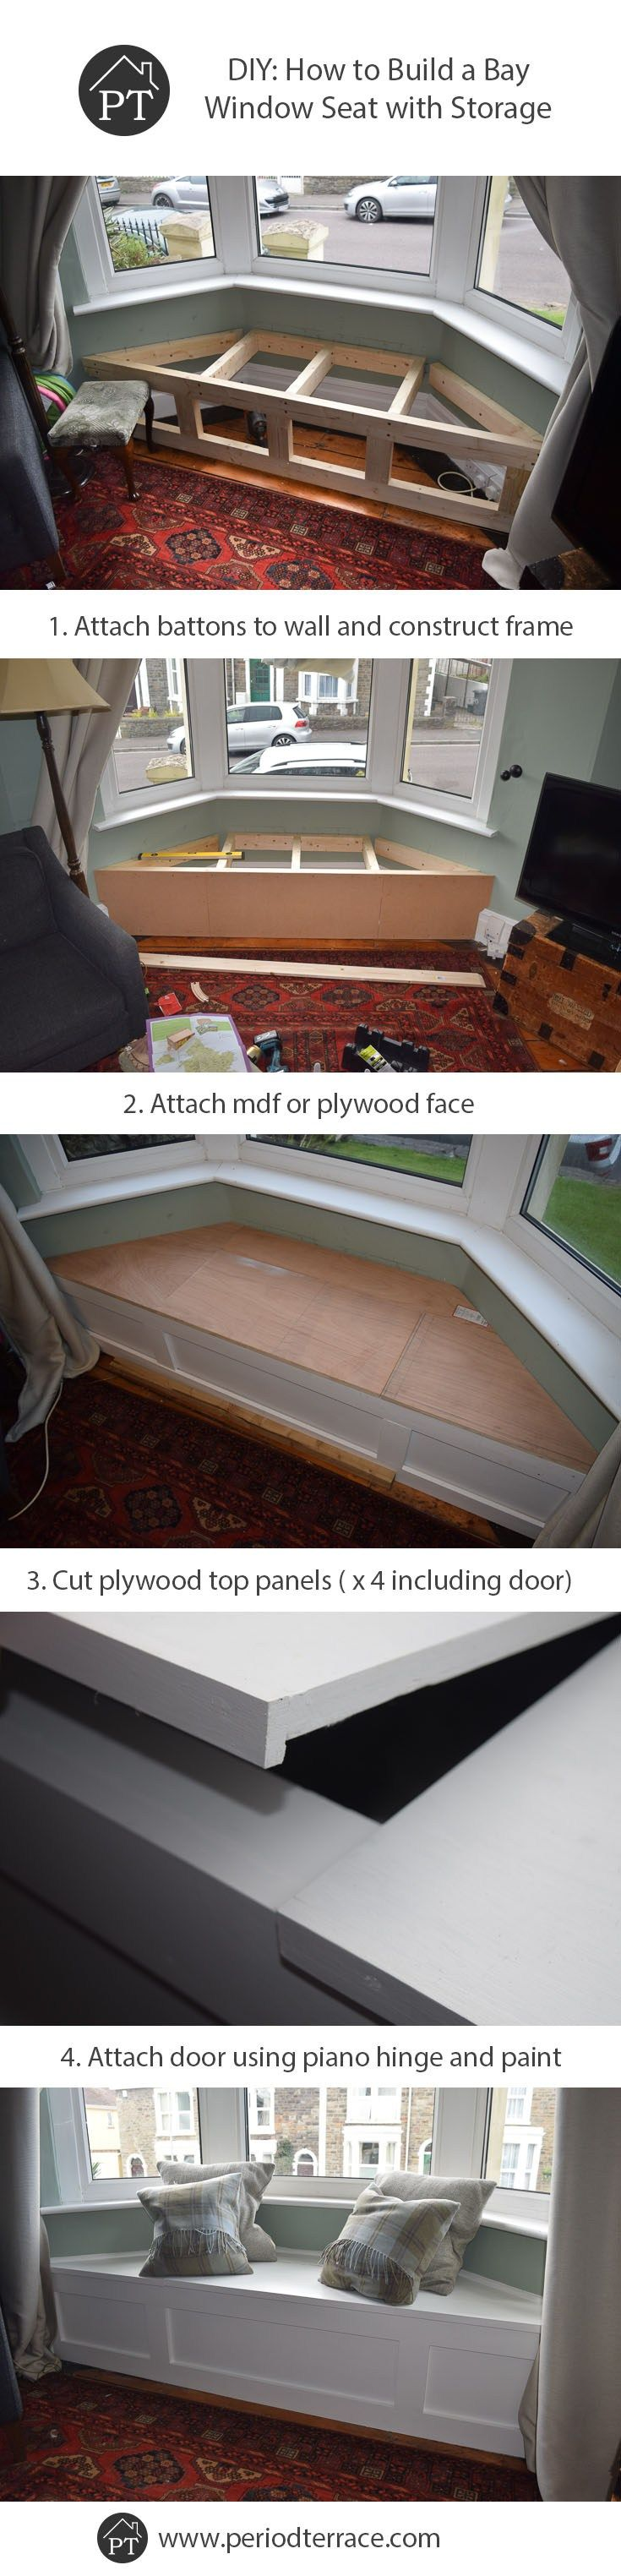 Best 20+ Bay window seats ideas on Pinterest